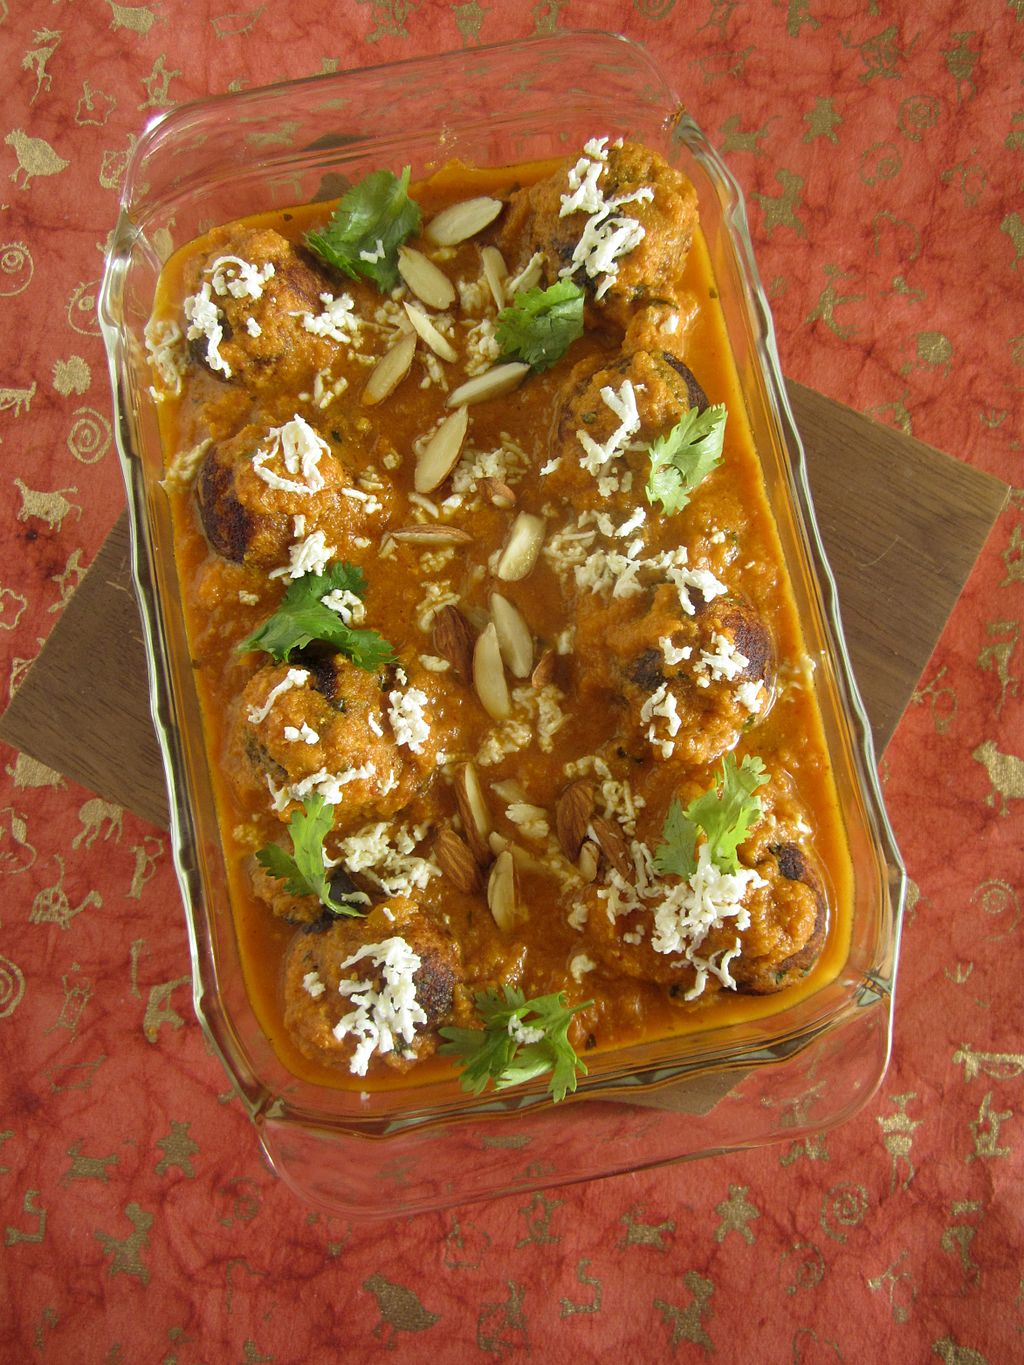 Malai Kofta Garnished and Ready to Eat India